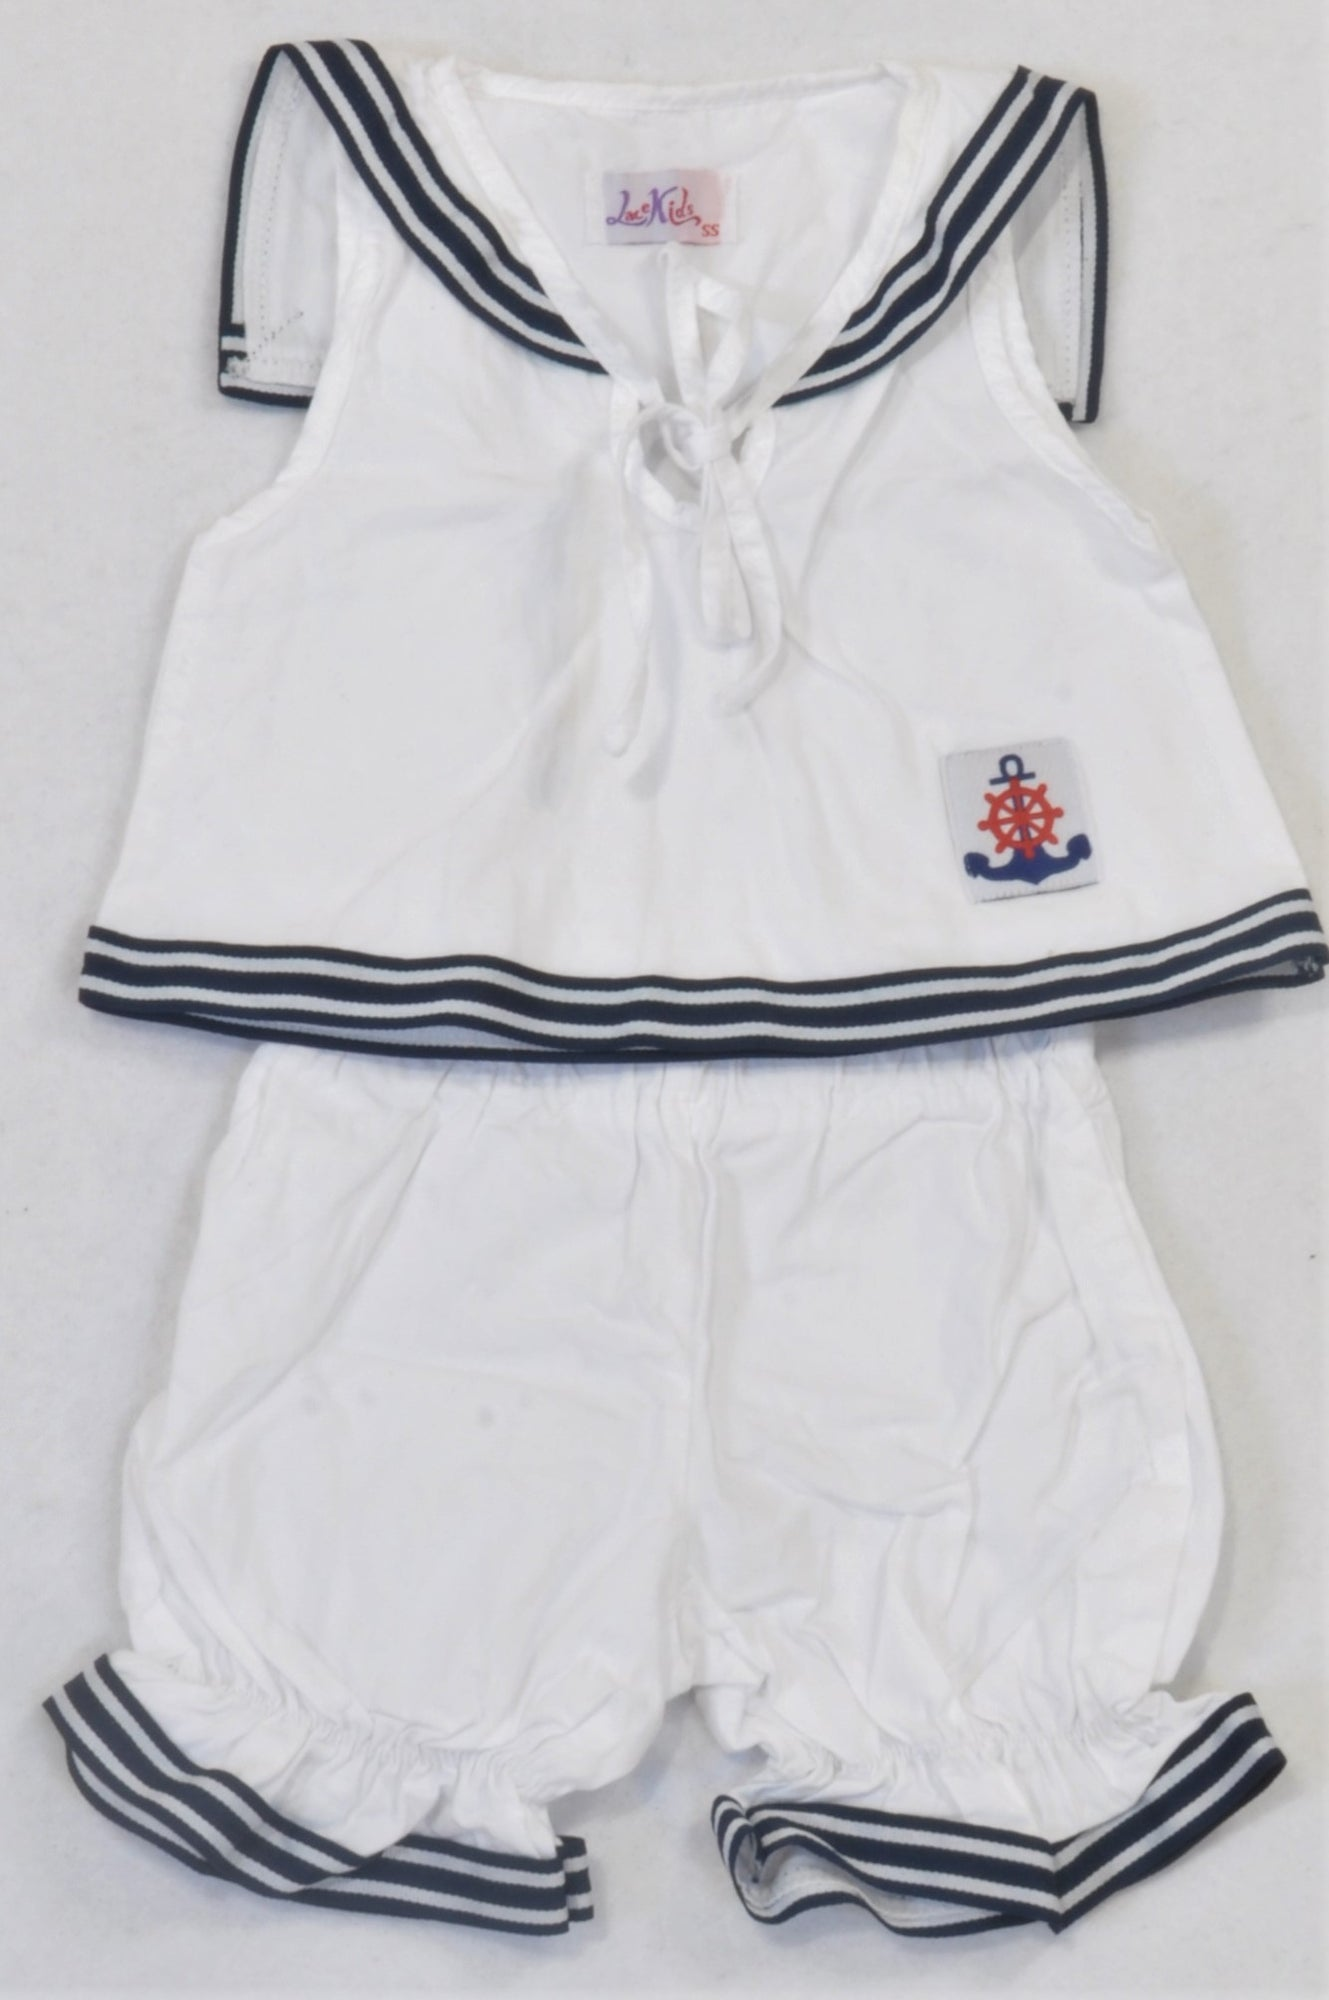 Lace Kids White & Navy Nautical Outfit Girls 3-6 months